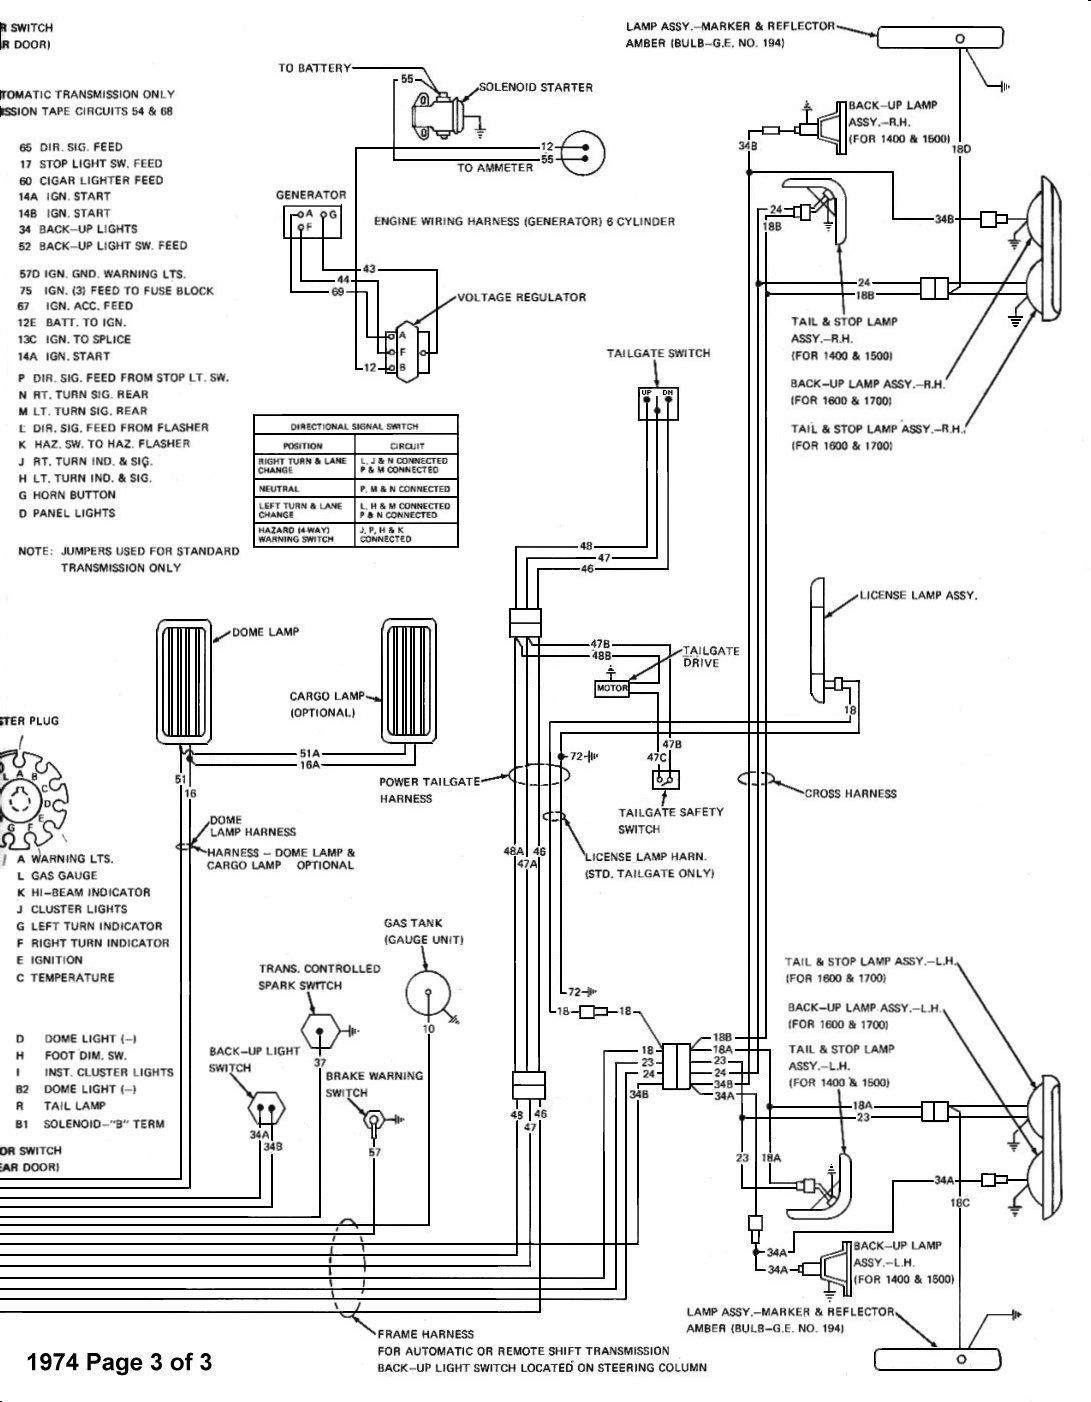 0bf842fecdc018e6e34d99f6dbec24a5 96 jeep cherokee wiring diagram blower motor fuse 96 jeep cherokee wiring diagram at soozxer.org